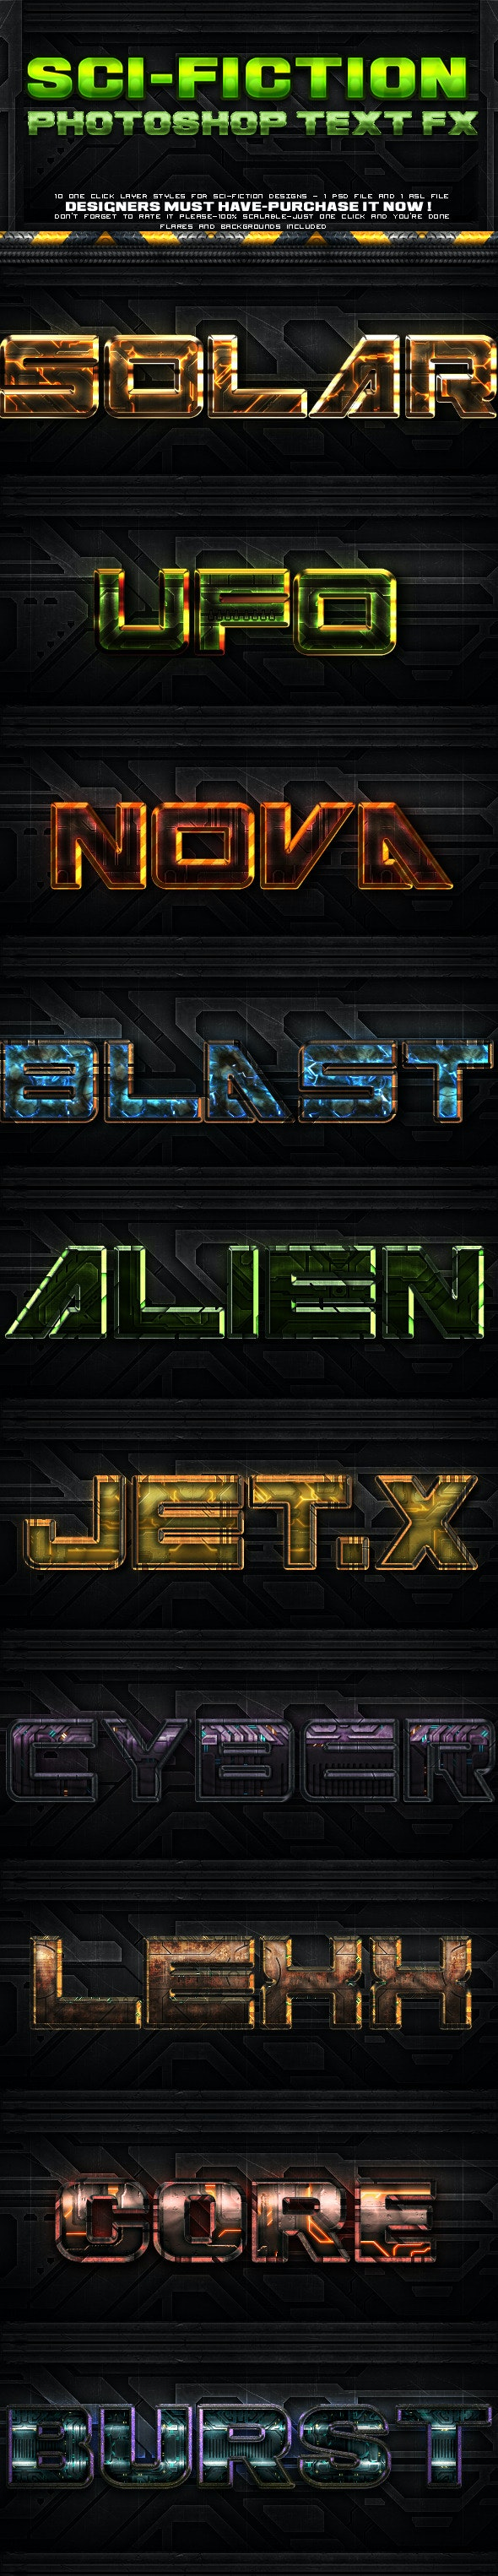 Sci-fi Layer Styles - Text Effects Styles